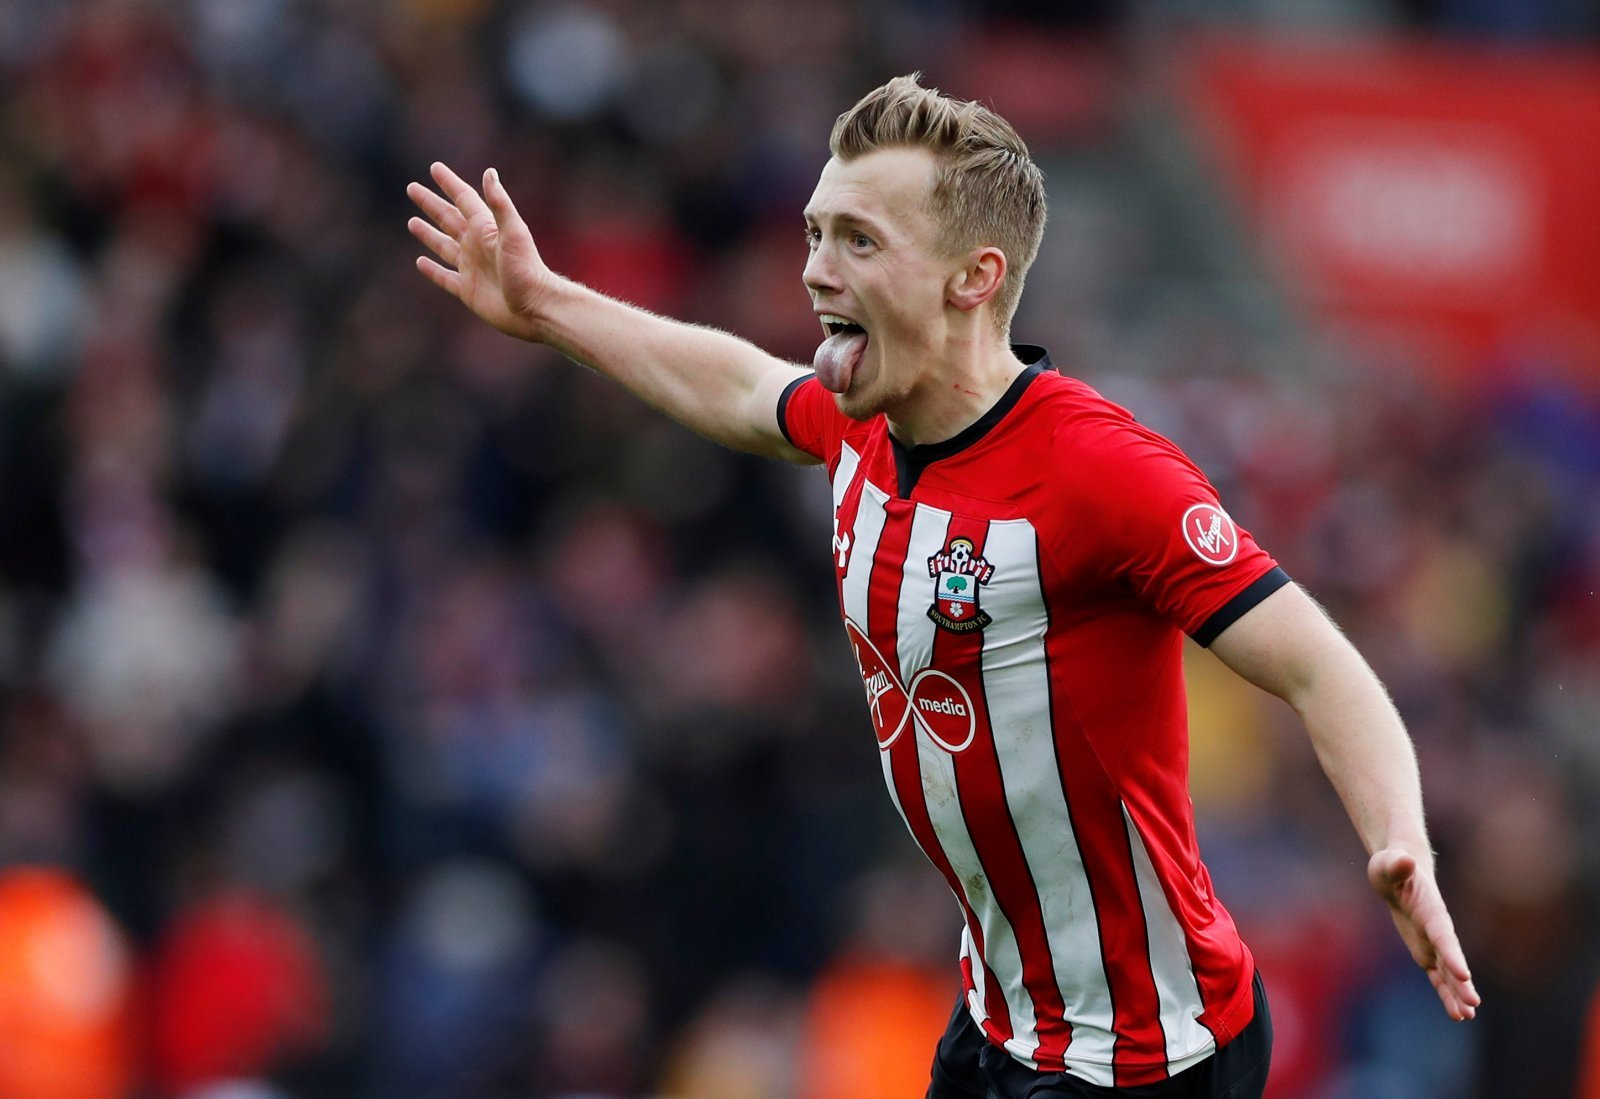 Unsung Hero: Ward-Prowse proves he is more than just a player with good technique